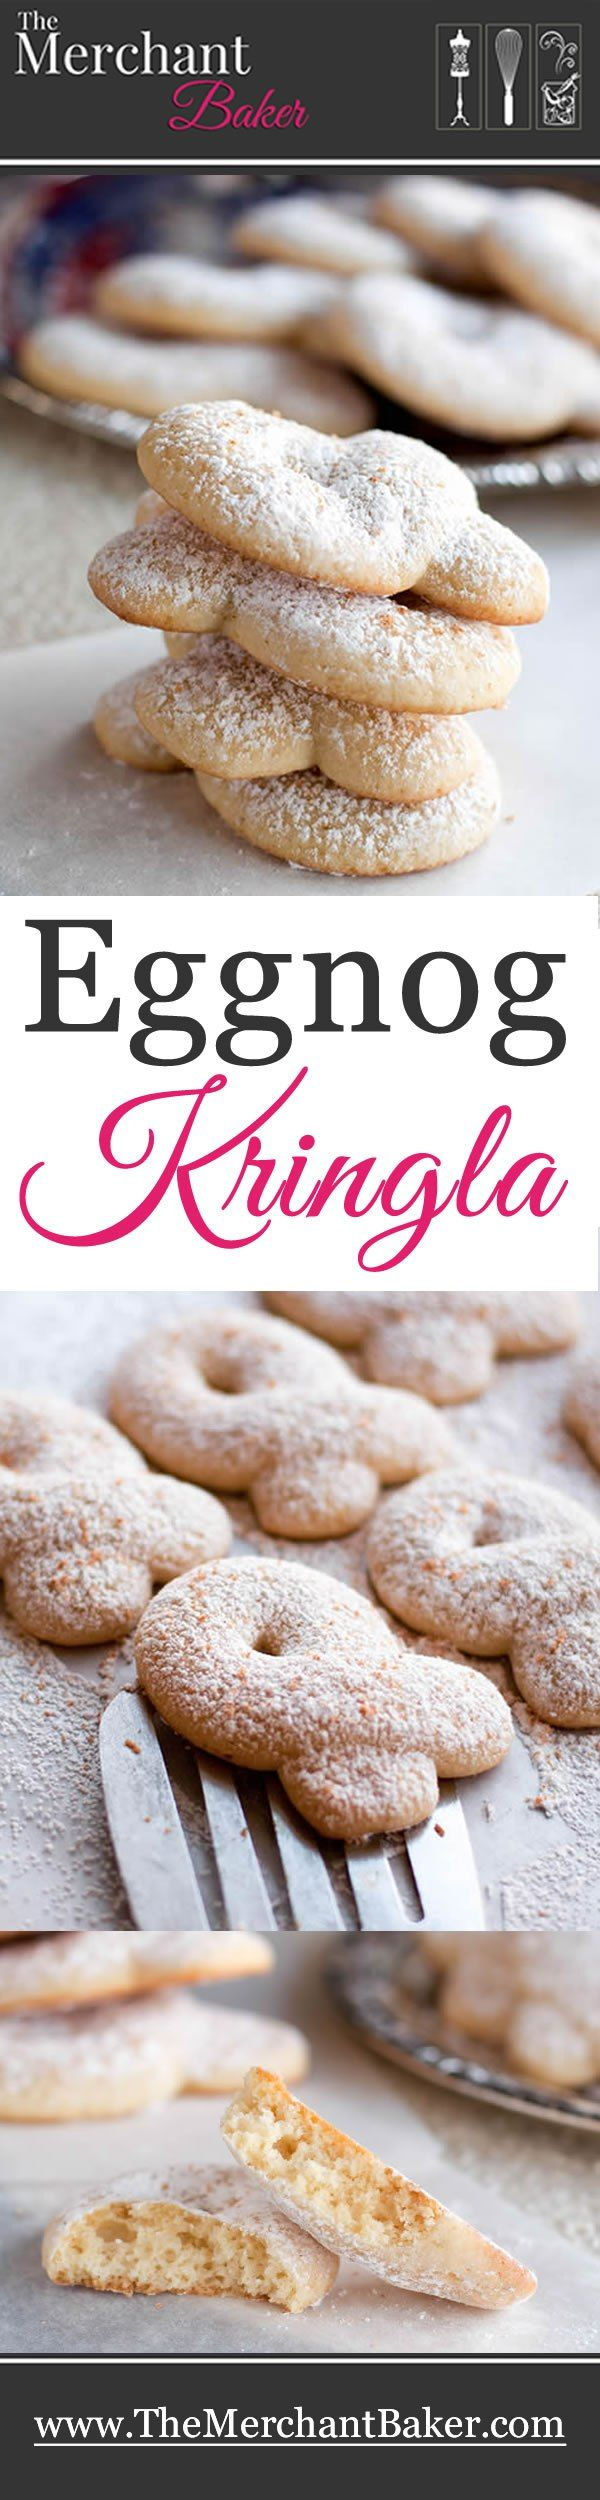 Eggnog Kringla. A light, cakey Scandinavian cookie with a delicate eggnog flavor, topped with dusting of confectioner's sugar and freshly grated nutmeg. #cookies #eggnog #christmas #holiday #soft